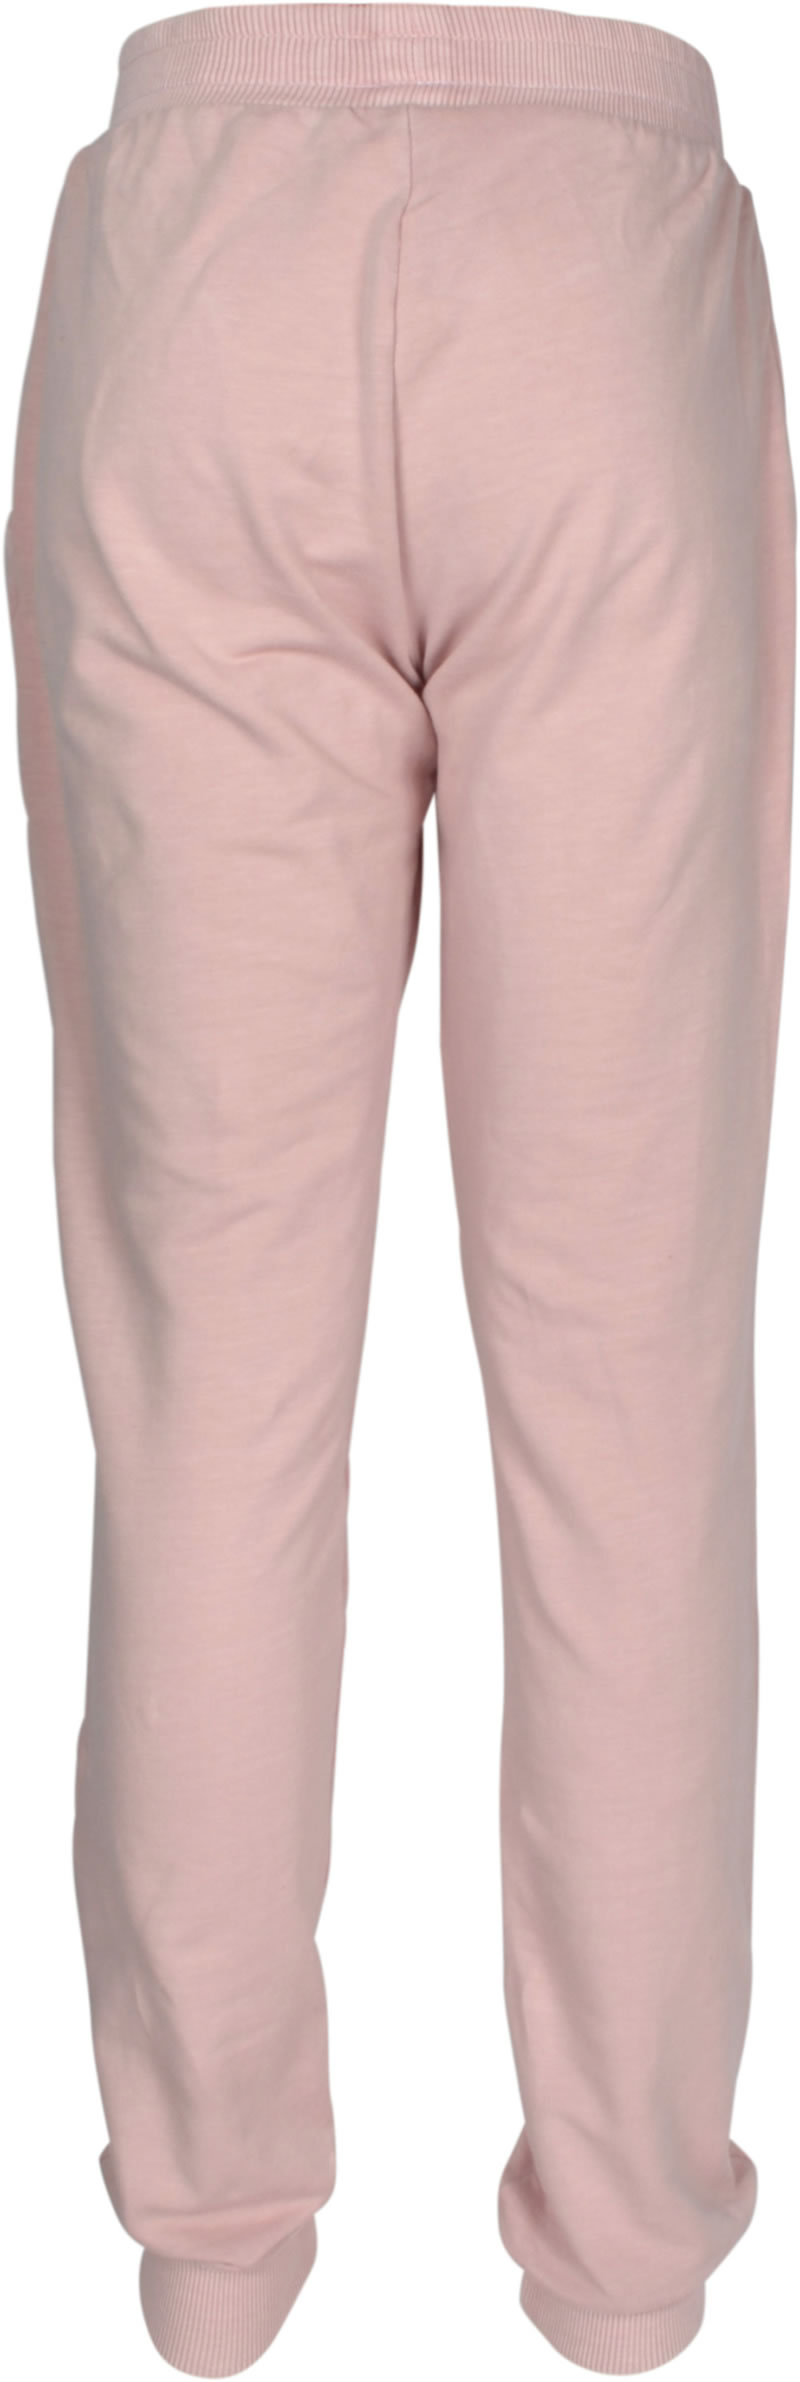 1a9405c18839 Mix and Match - Jogging pants from the sleep and home wear collection by Marc  O Polo for girls in rose with a wide ribbed waistband and two pockets.